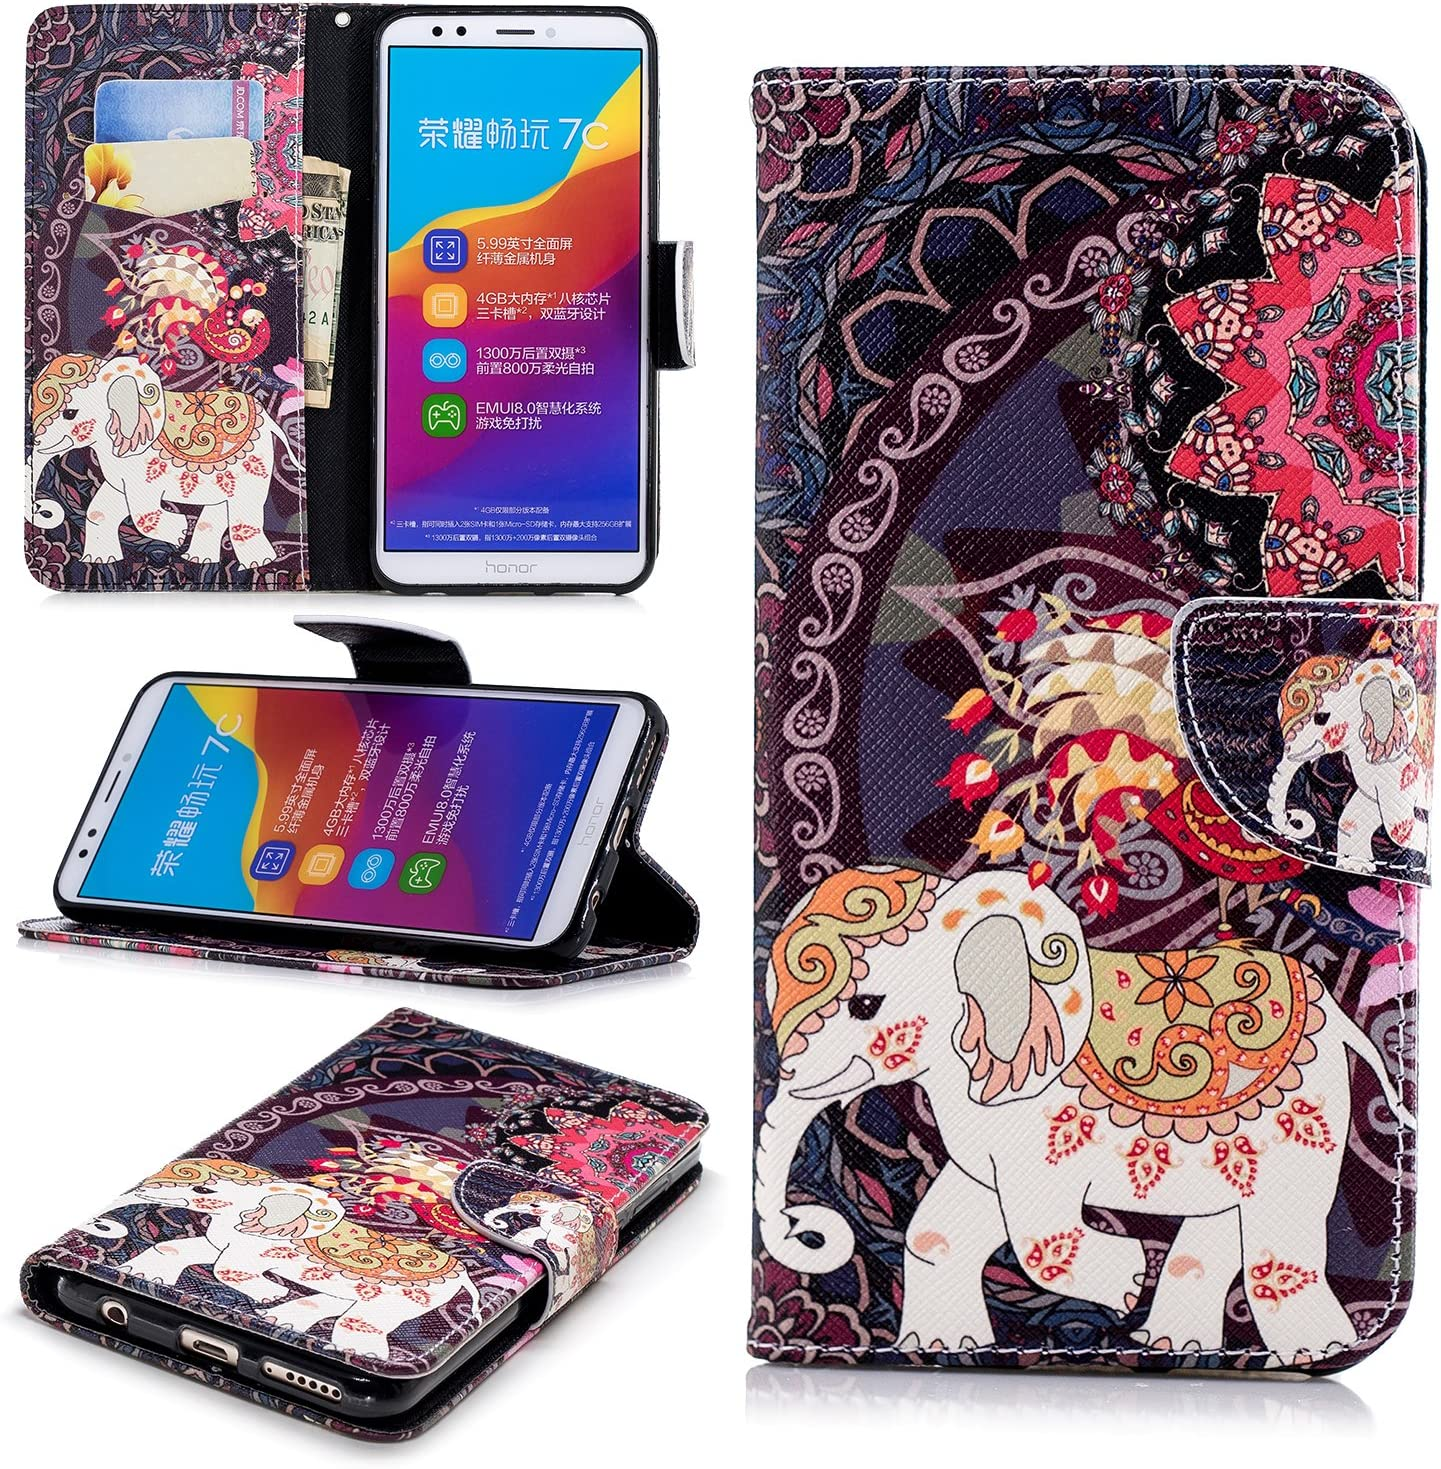 Lomogo Leather Wallet Case with Kickstand Card Holder Shockproof Flip Case Cover for Huawei Y7 2018 Huawei Y7 2018 Y7 Prime 2018 Case LOBFE11438#5 Honor 7C